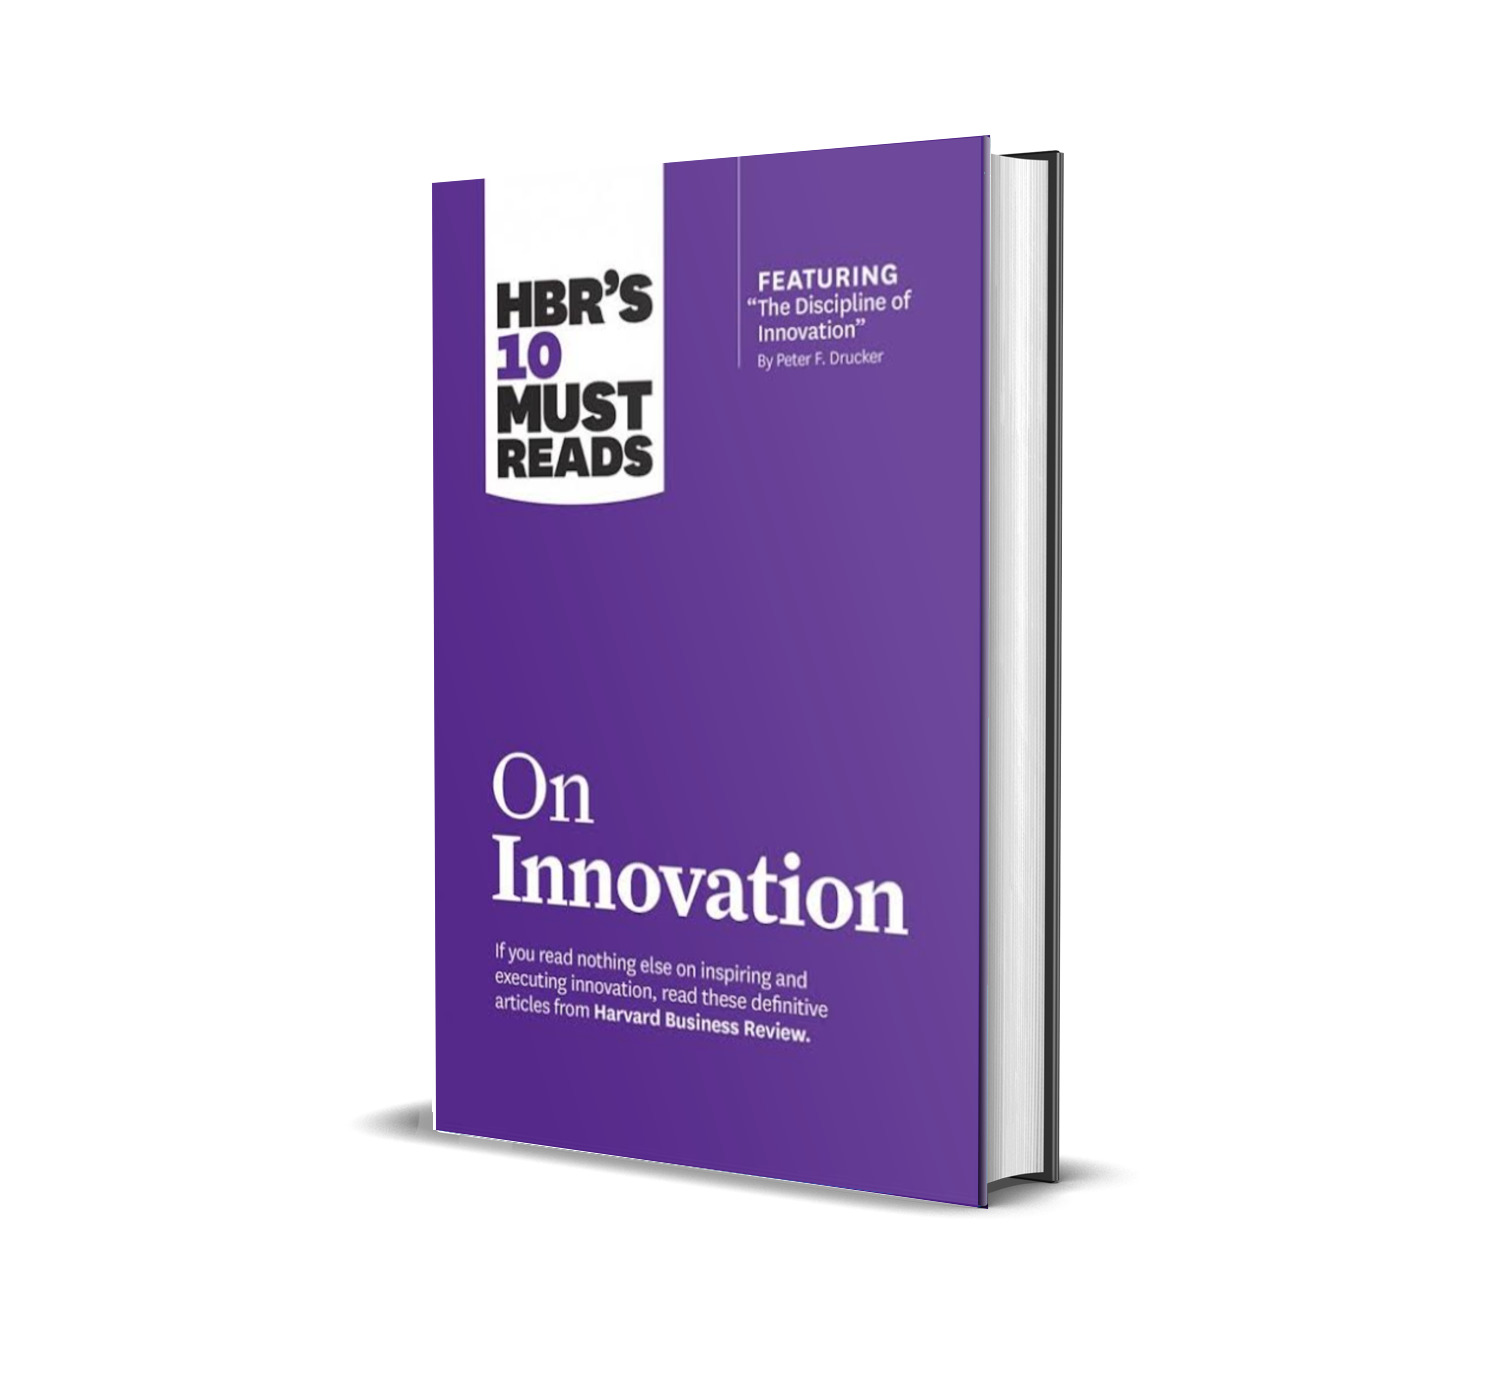 HBR's 10 must read books on innovation